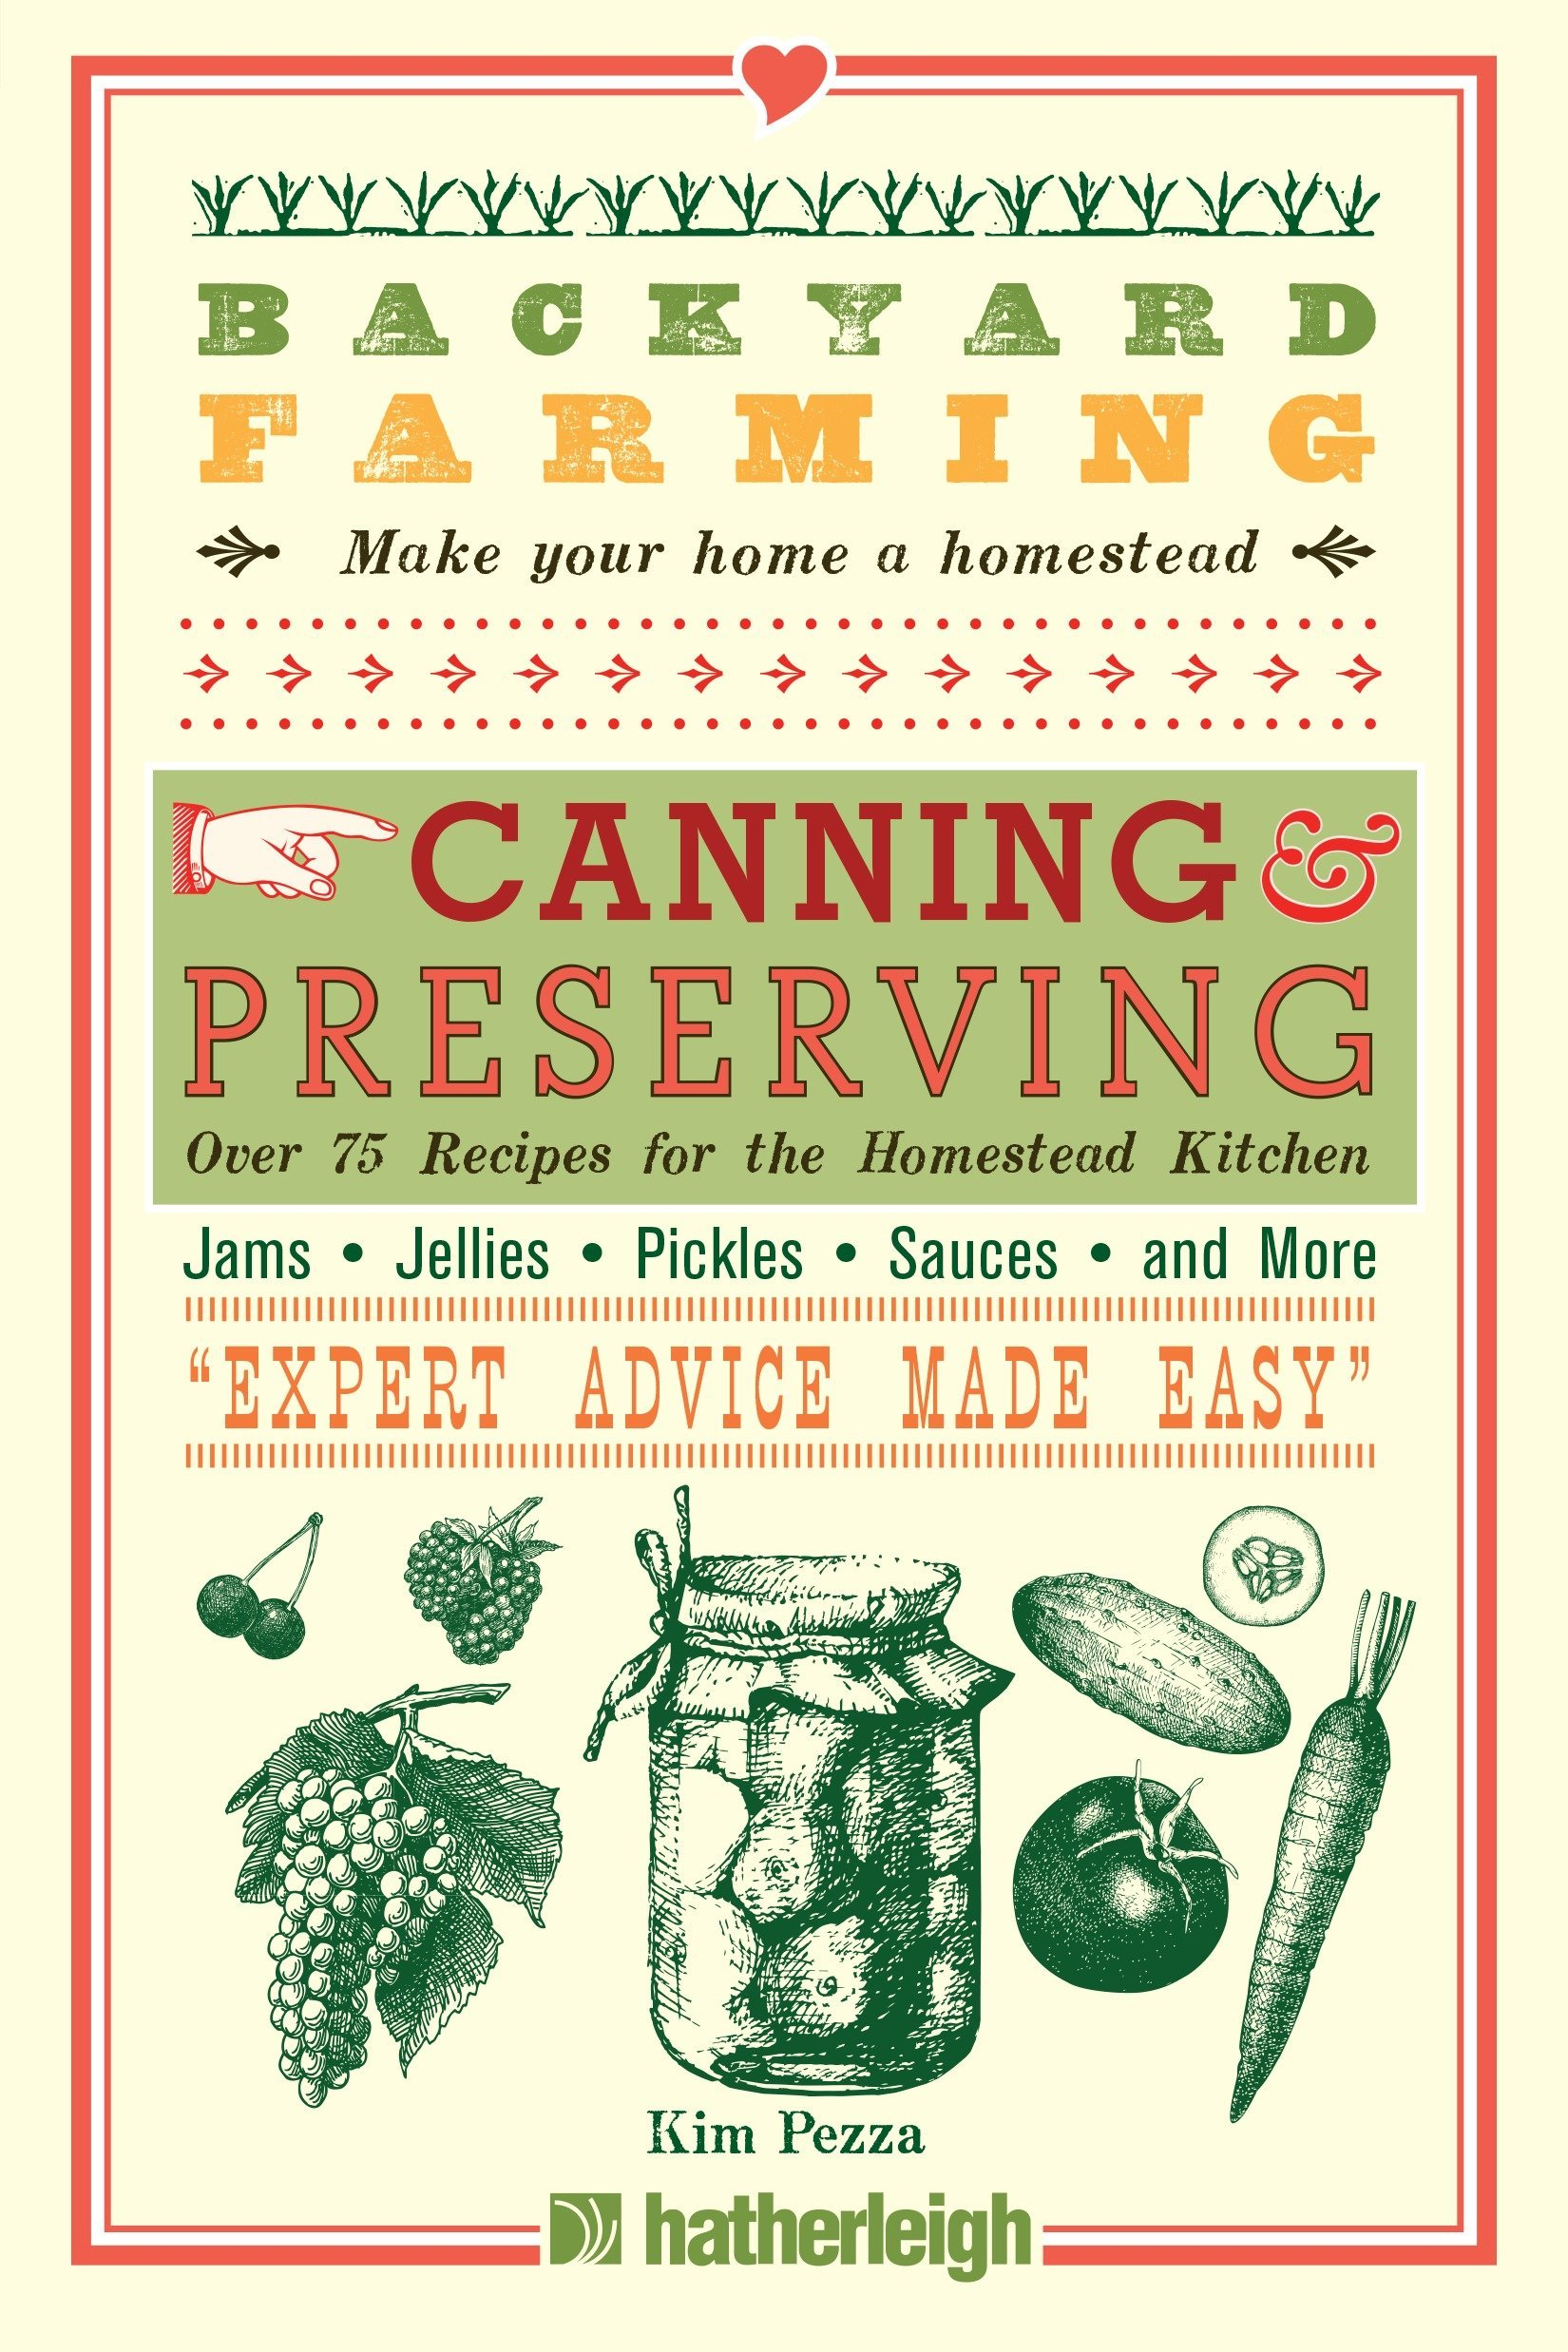 Download Backyard Farming: Canning & Preserving: Over 75 Recipes for the Homestead Kitchen PDF